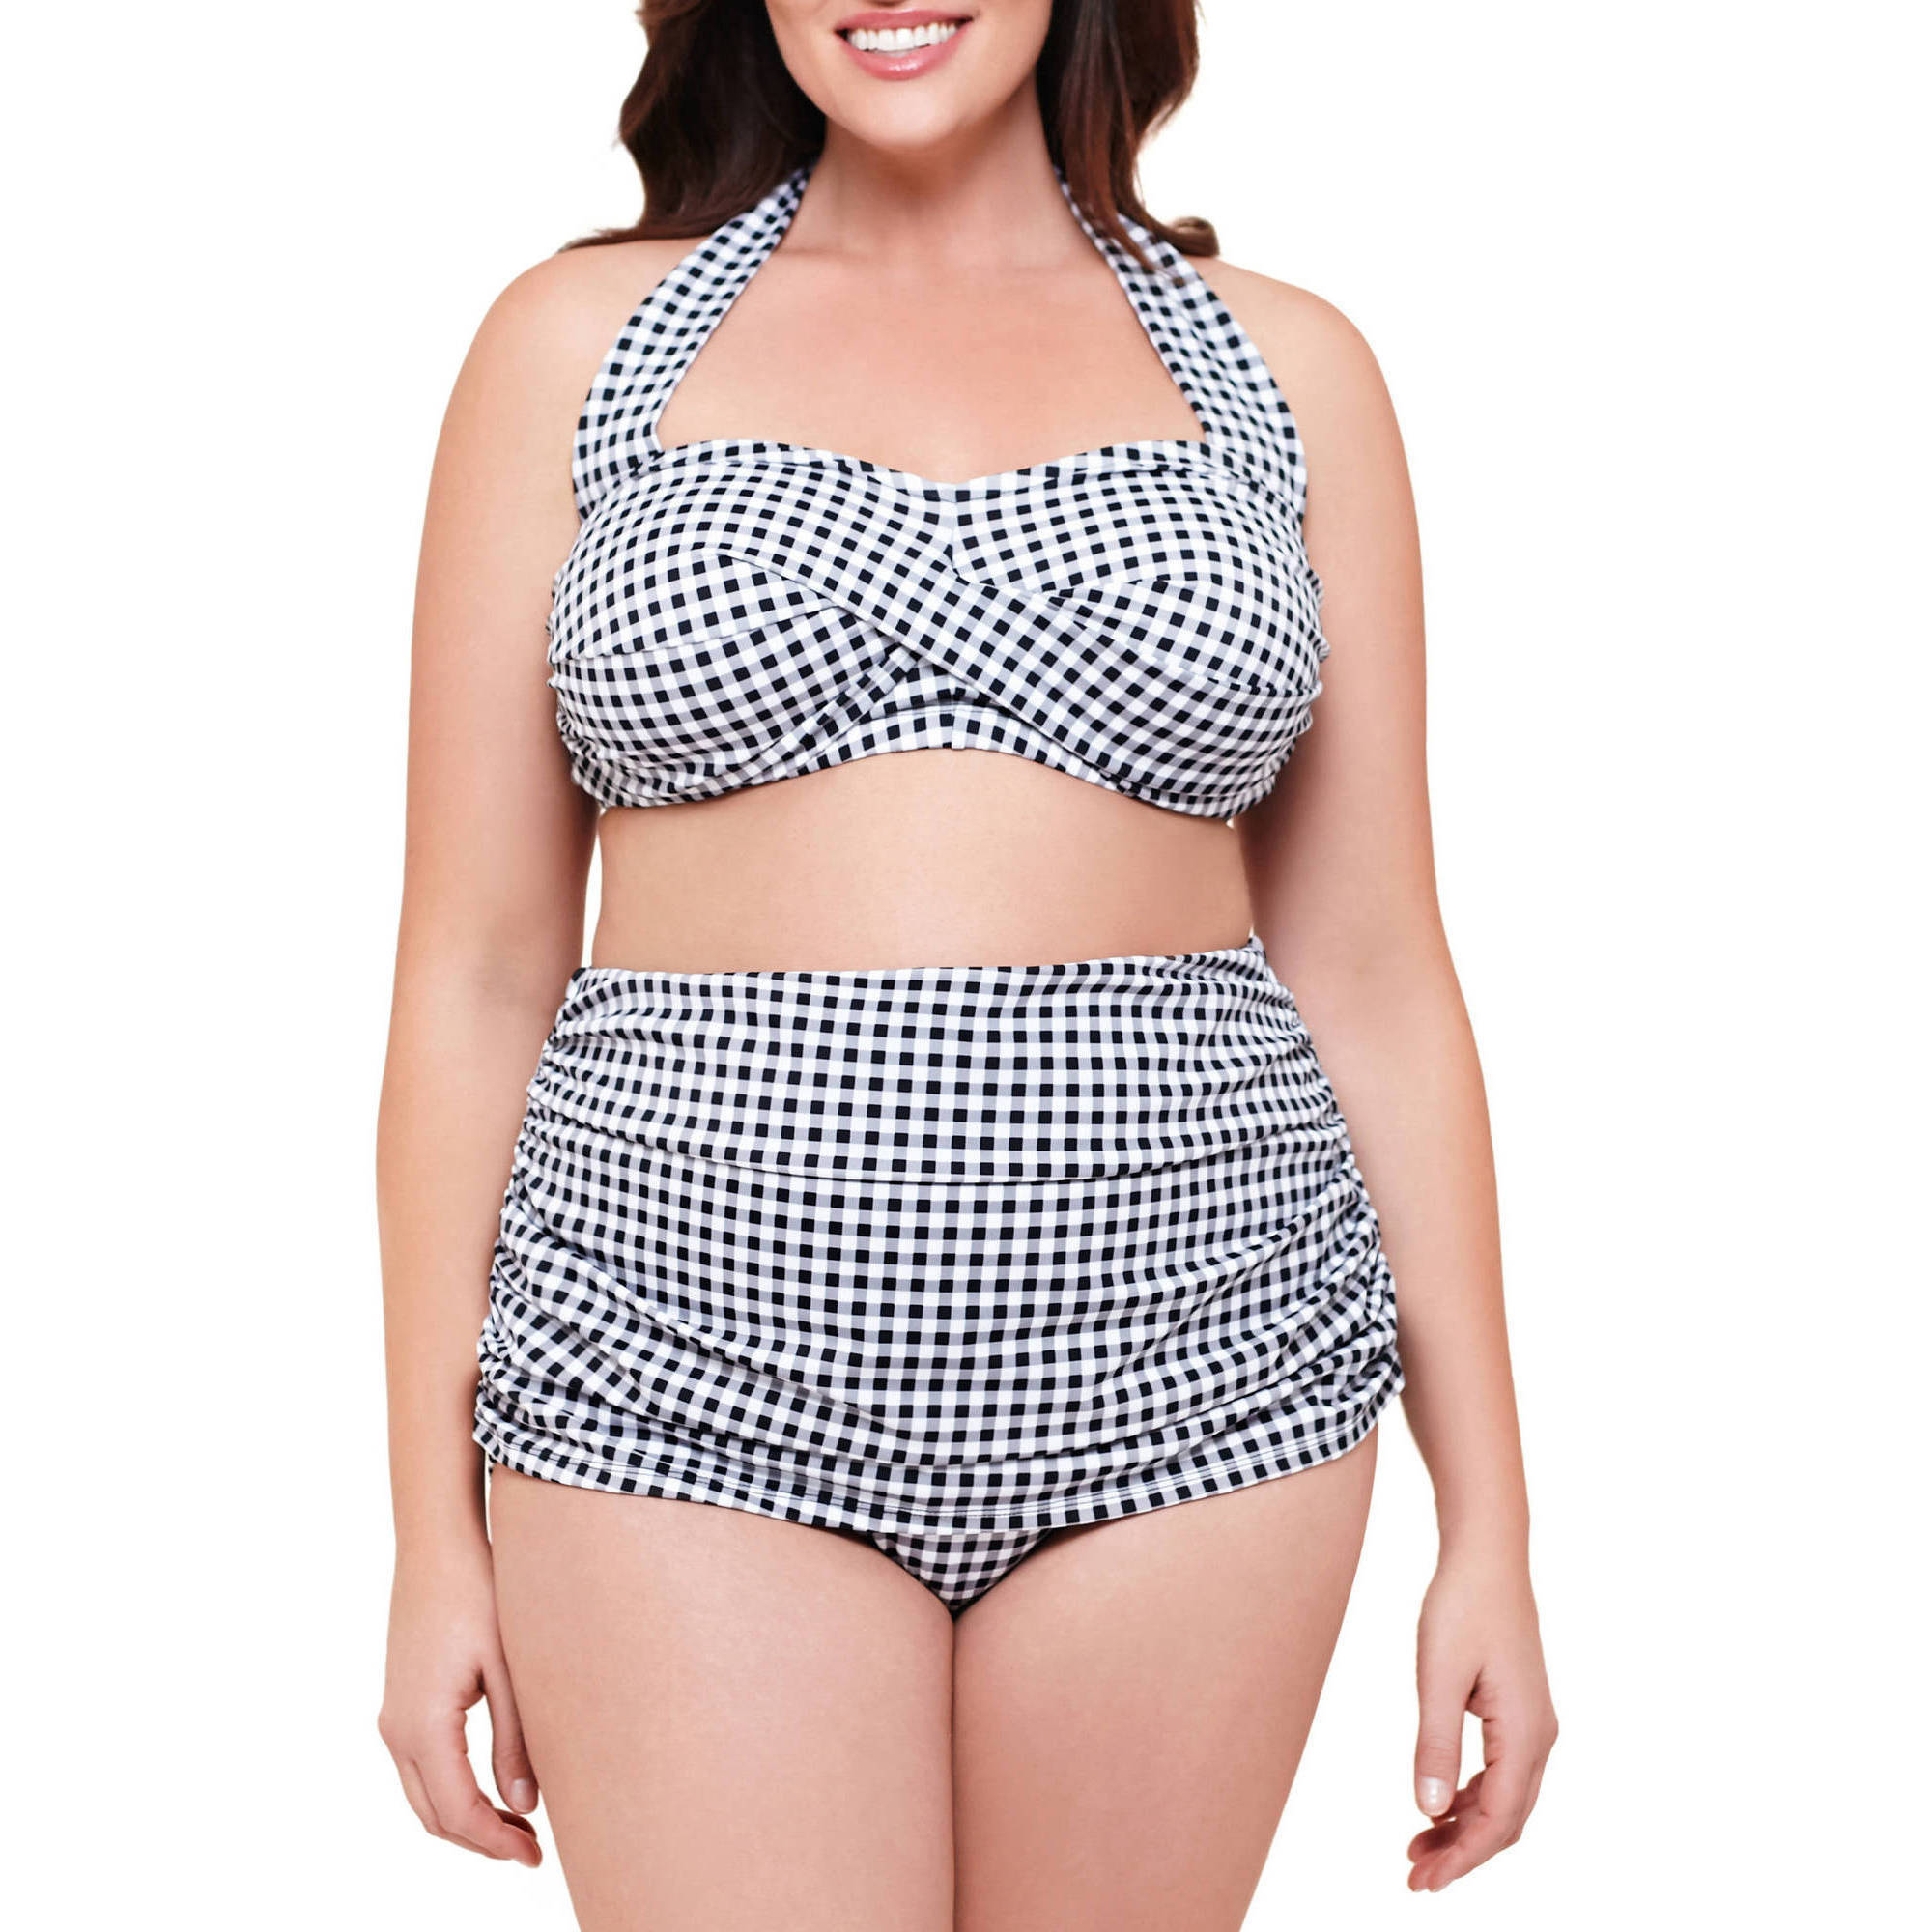 Suddenly Slim By Catalina Women's Plus-Size Slimming High-Waisted Bikini 2 Piece Set